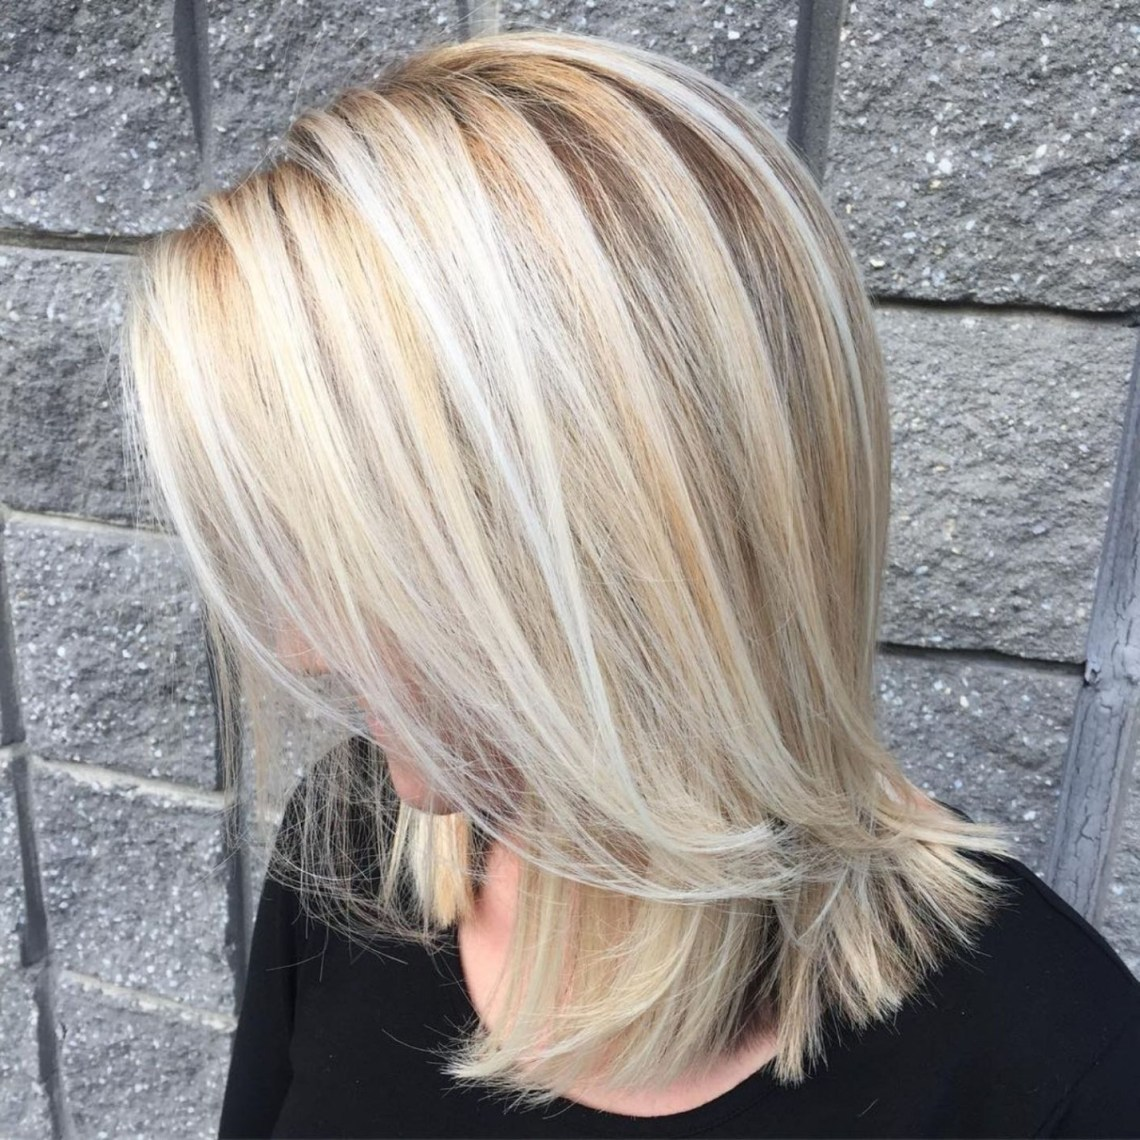 Pin On Hair Styles Medium Length Blonde Hairstyles Straight